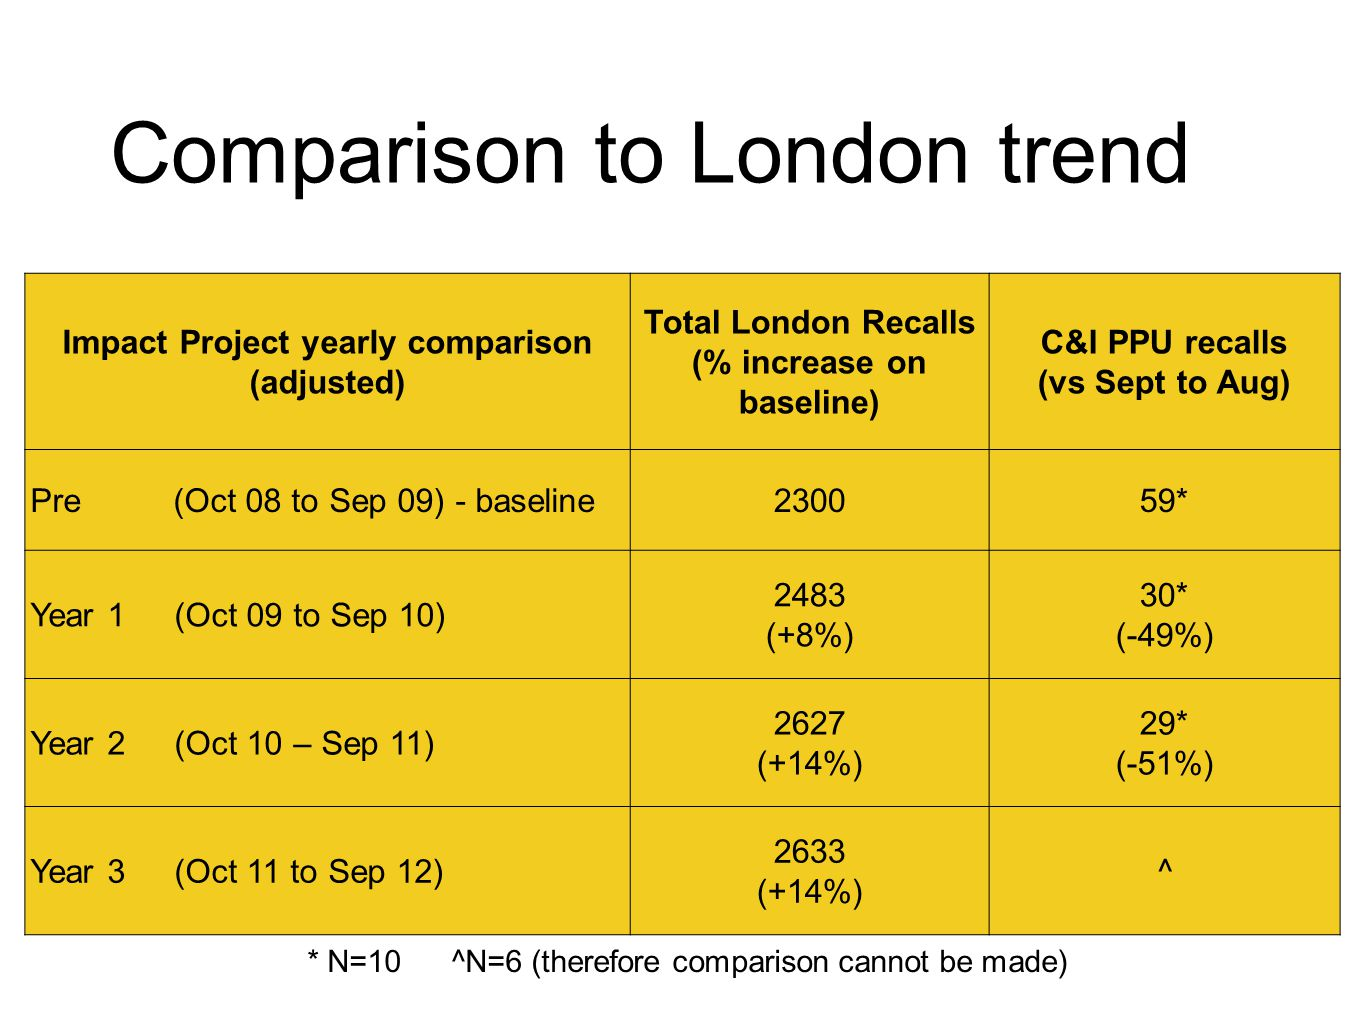 Impact Project yearly comparison (adjusted) Total London Recalls (% increase on baseline) C&I PPU recalls (vs Sept to Aug) Pre (Oct 08 to Sep 09) - baseline230059* Year 1 (Oct 09 to Sep 10) 2483 (+8%) 30* (-49%) Year 2 (Oct 10 – Sep 11) 2627 (+14%) 29* (-51%) Year 3 (Oct 11 to Sep 12) 2633 (+14%) ^ * N=10^N=6 (therefore comparison cannot be made) Comparison to London trend